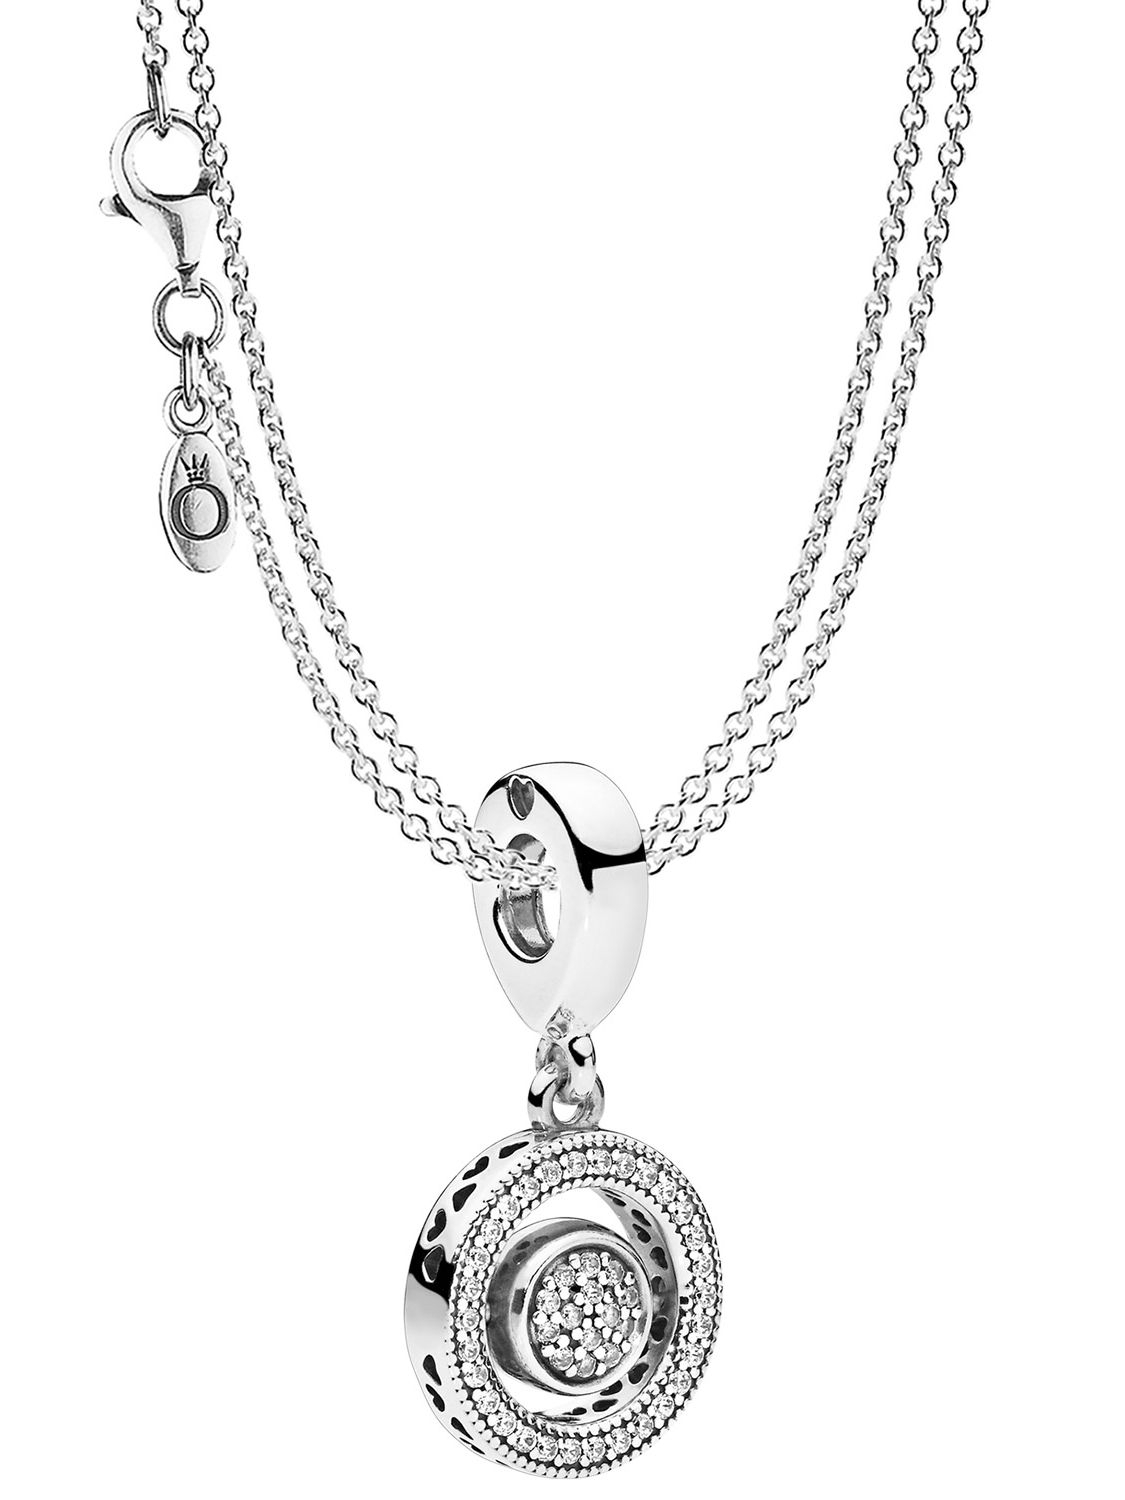 Pandora 08591 Necklace With Charm Pendant Logo Intended For Best And Newest Pandora Logo Pendant Necklaces (View 5 of 25)